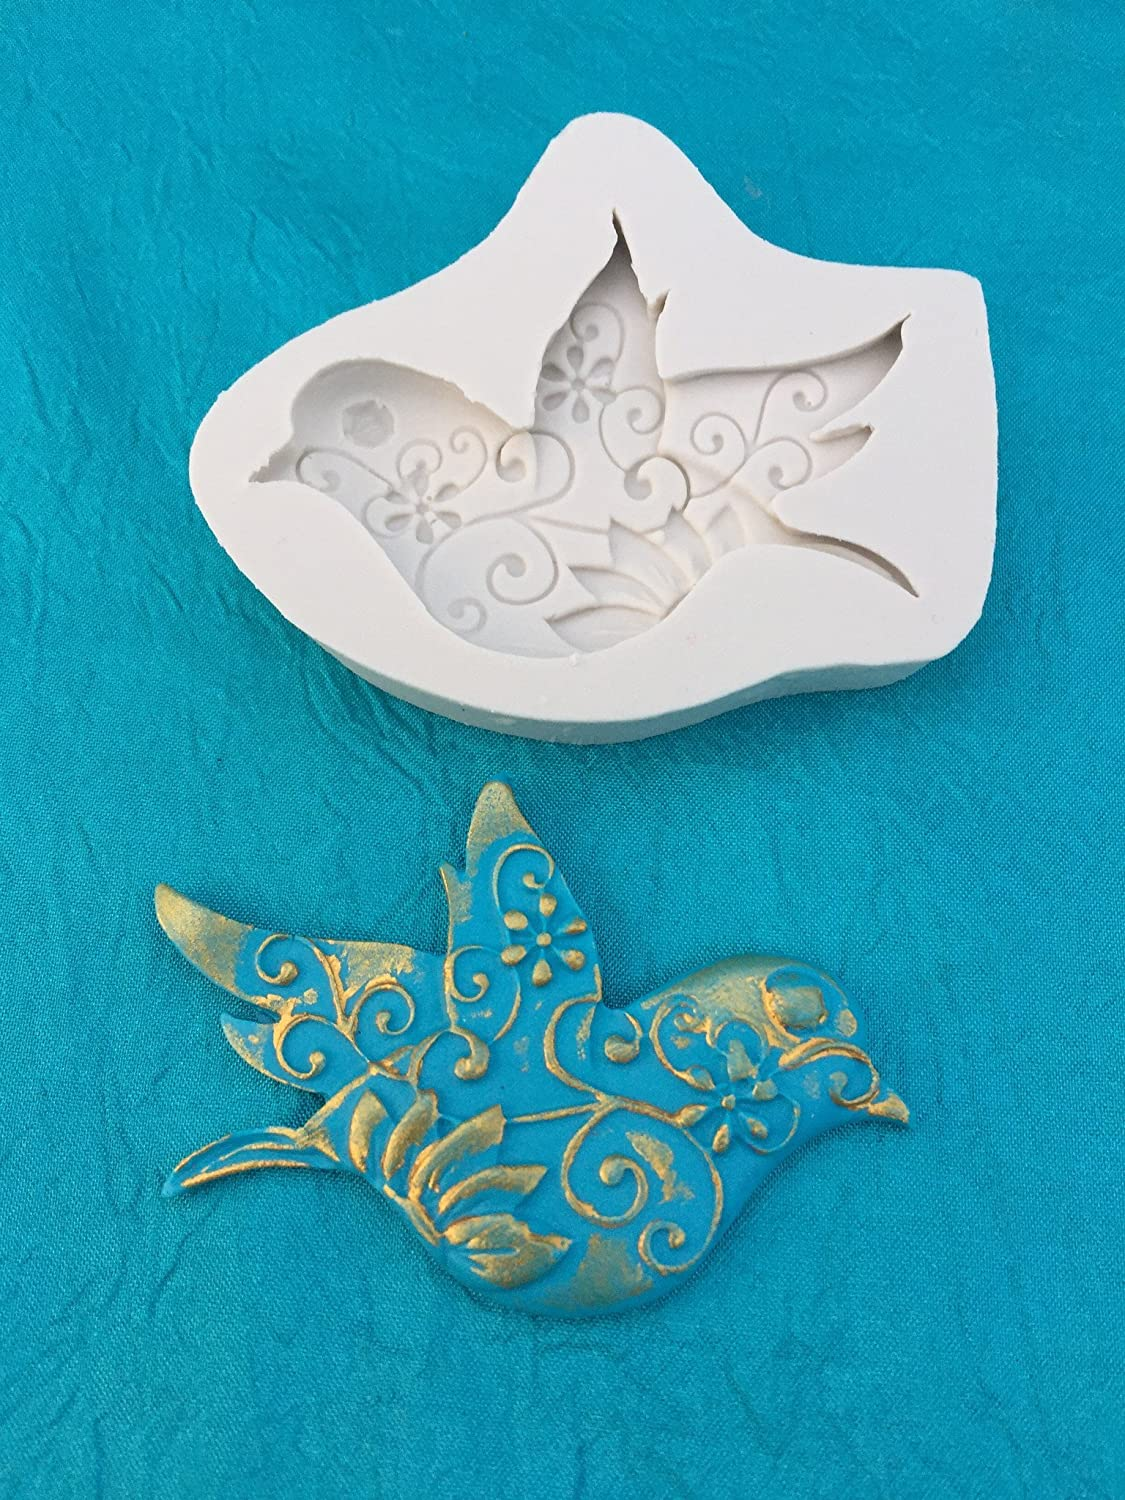 Dove Bird with Intricate Swirl Design Silicone Mold Great for Polymer Clay